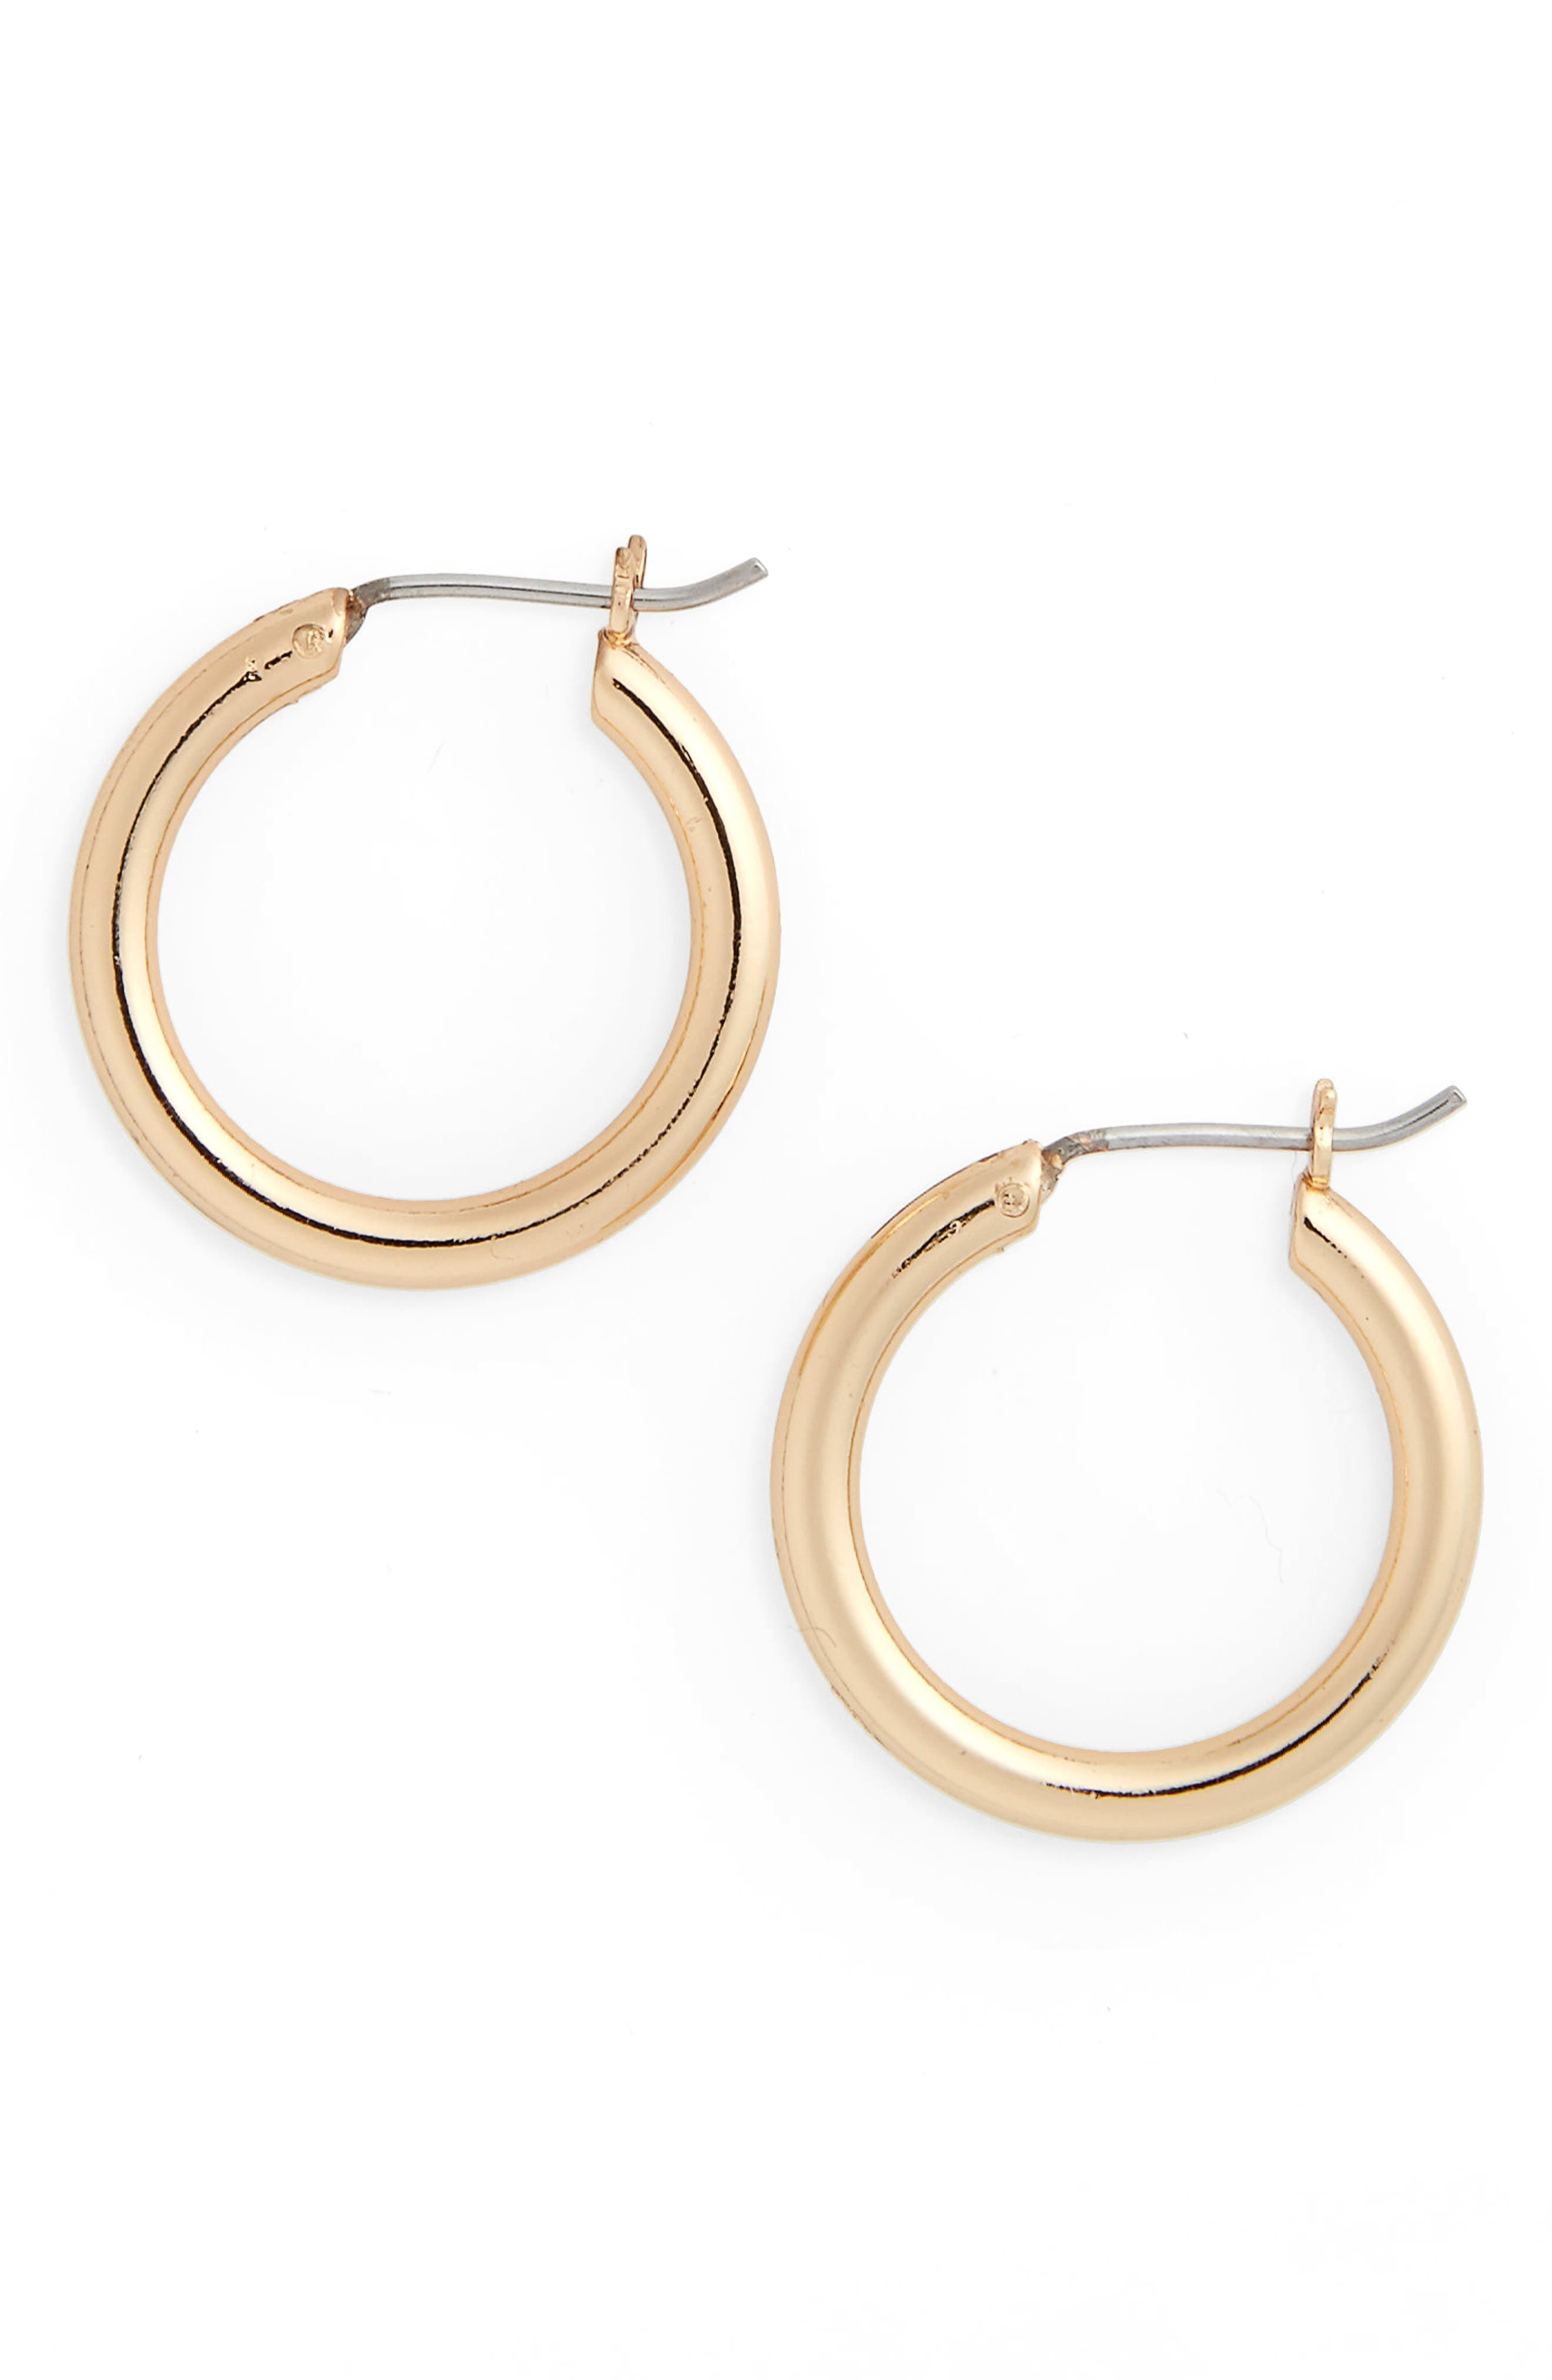 Small Endless Hoop Earrings,                         Main,                         color, Gold